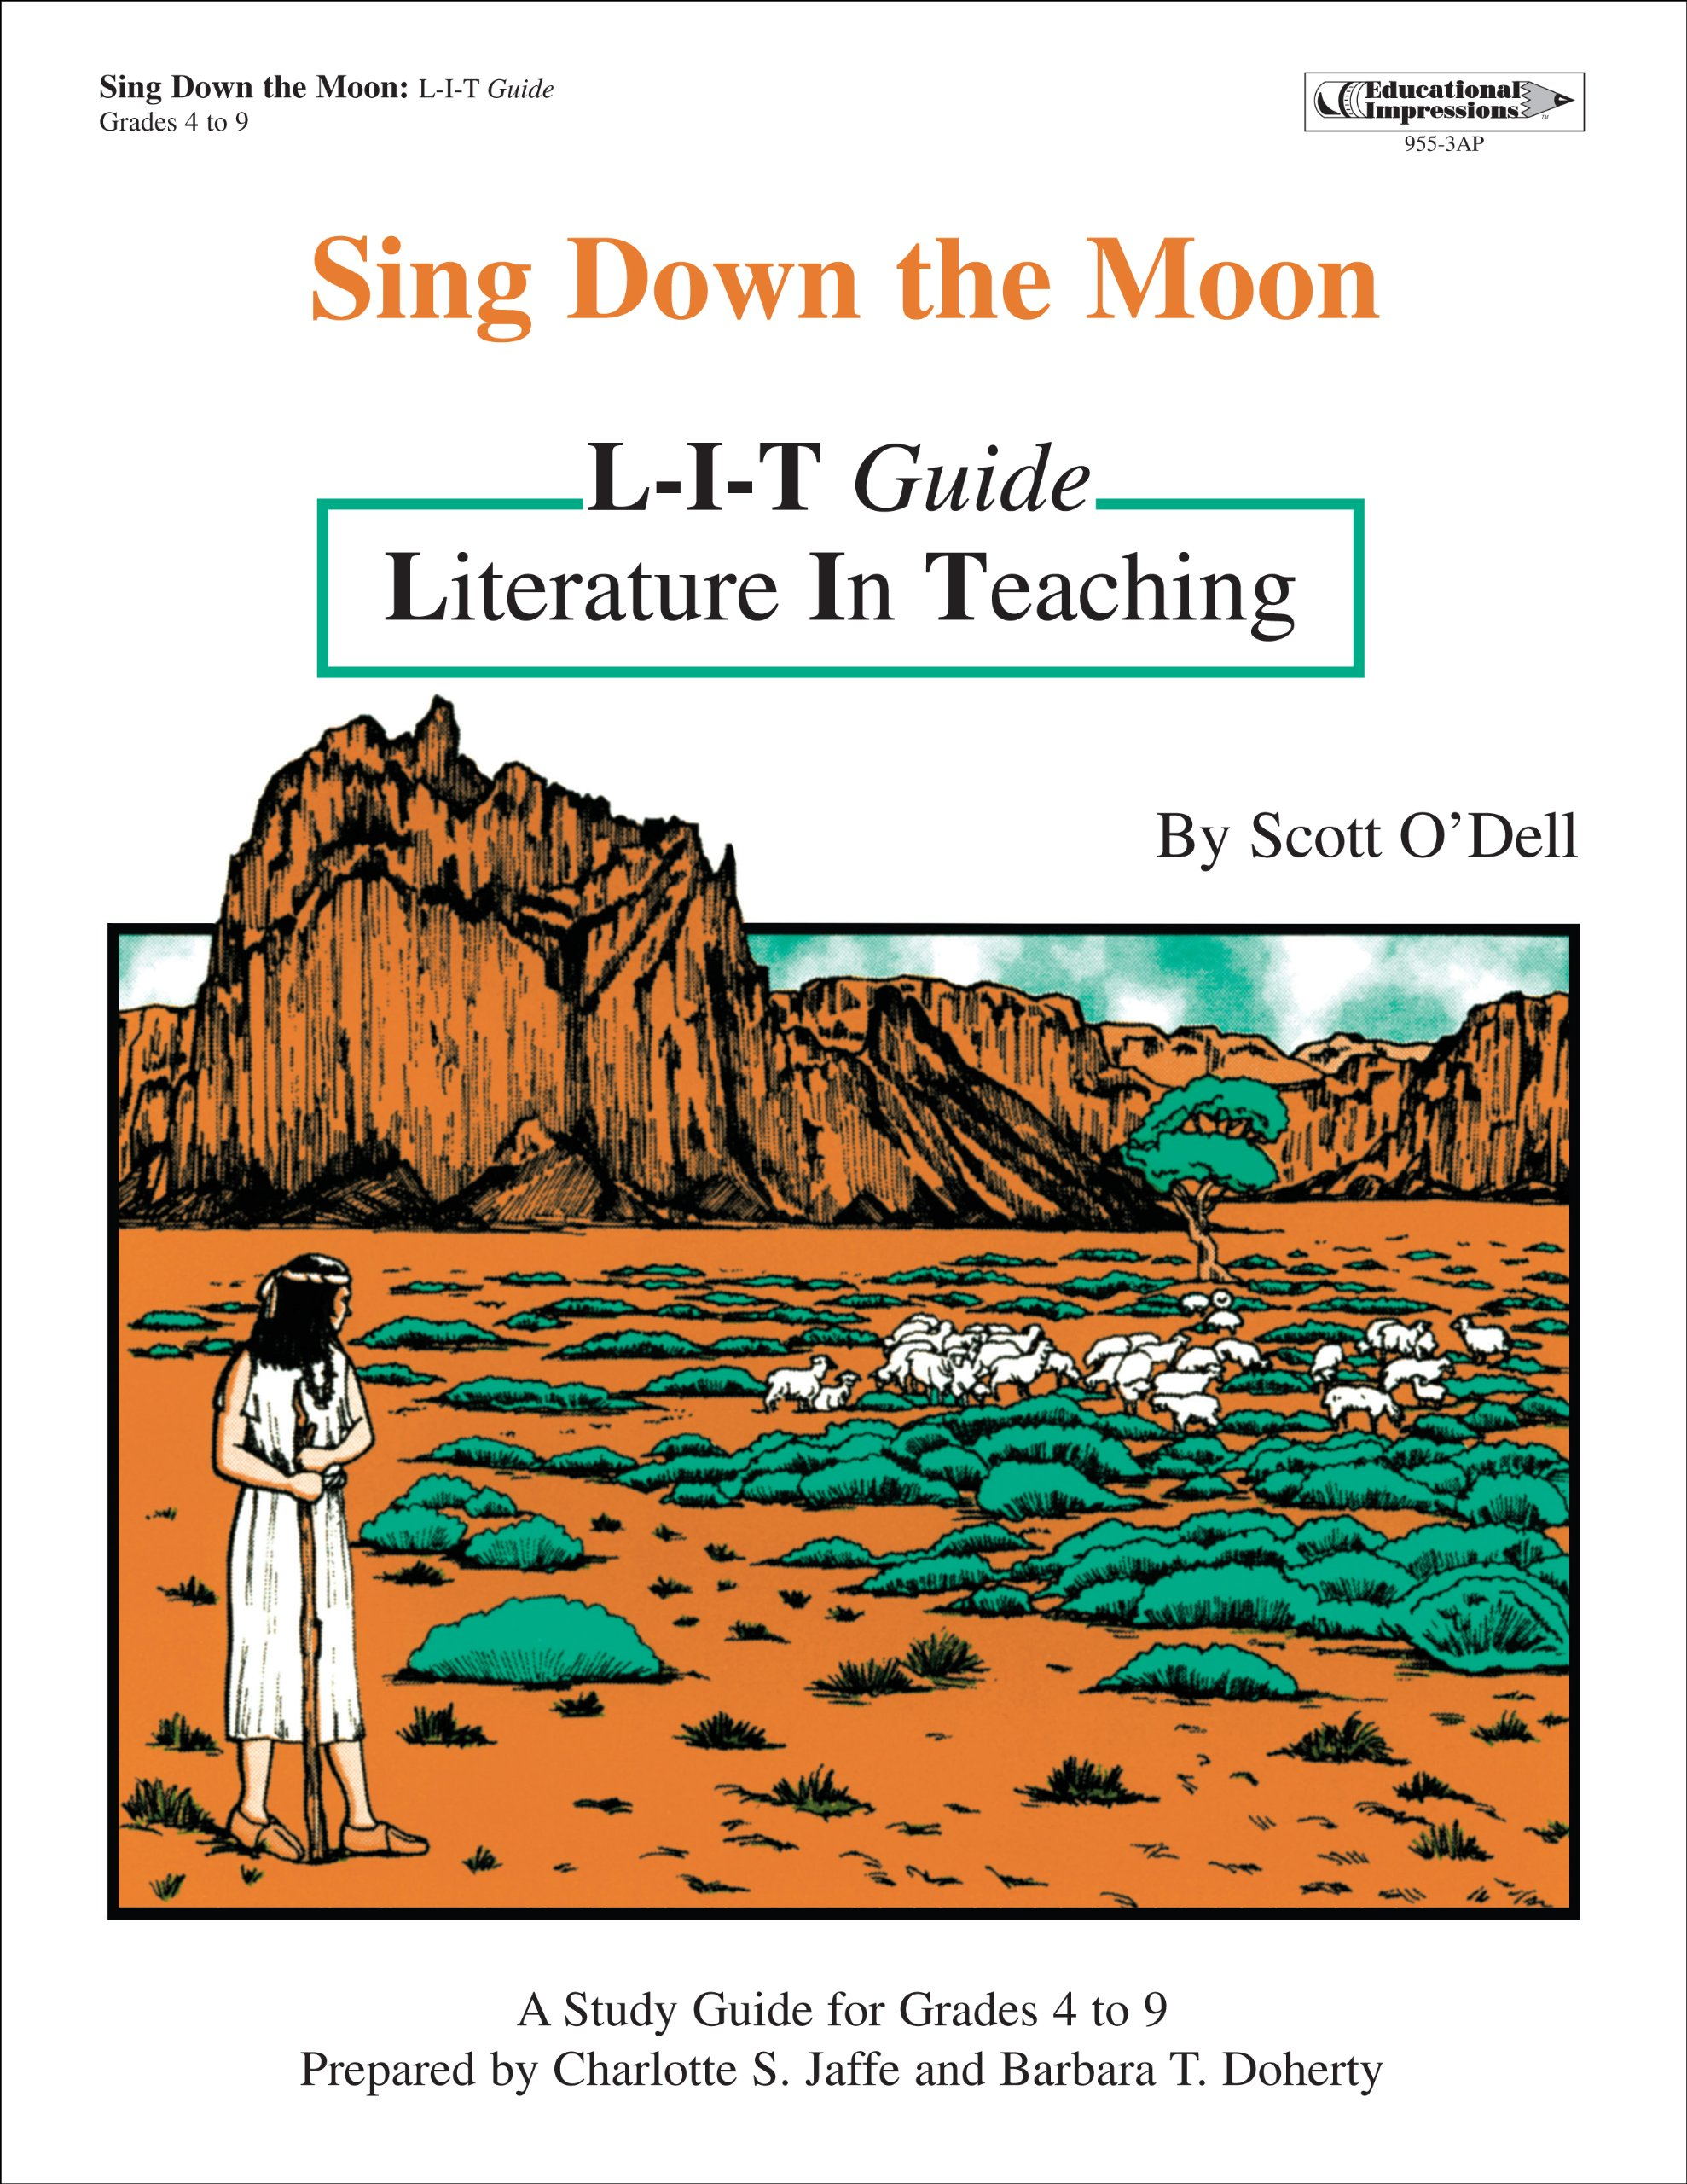 sing down the moon charlotte jaffe barbara doherty 9781566449557 rh amazon com Sing Down the Moon Questions Sing Down the Moon Story